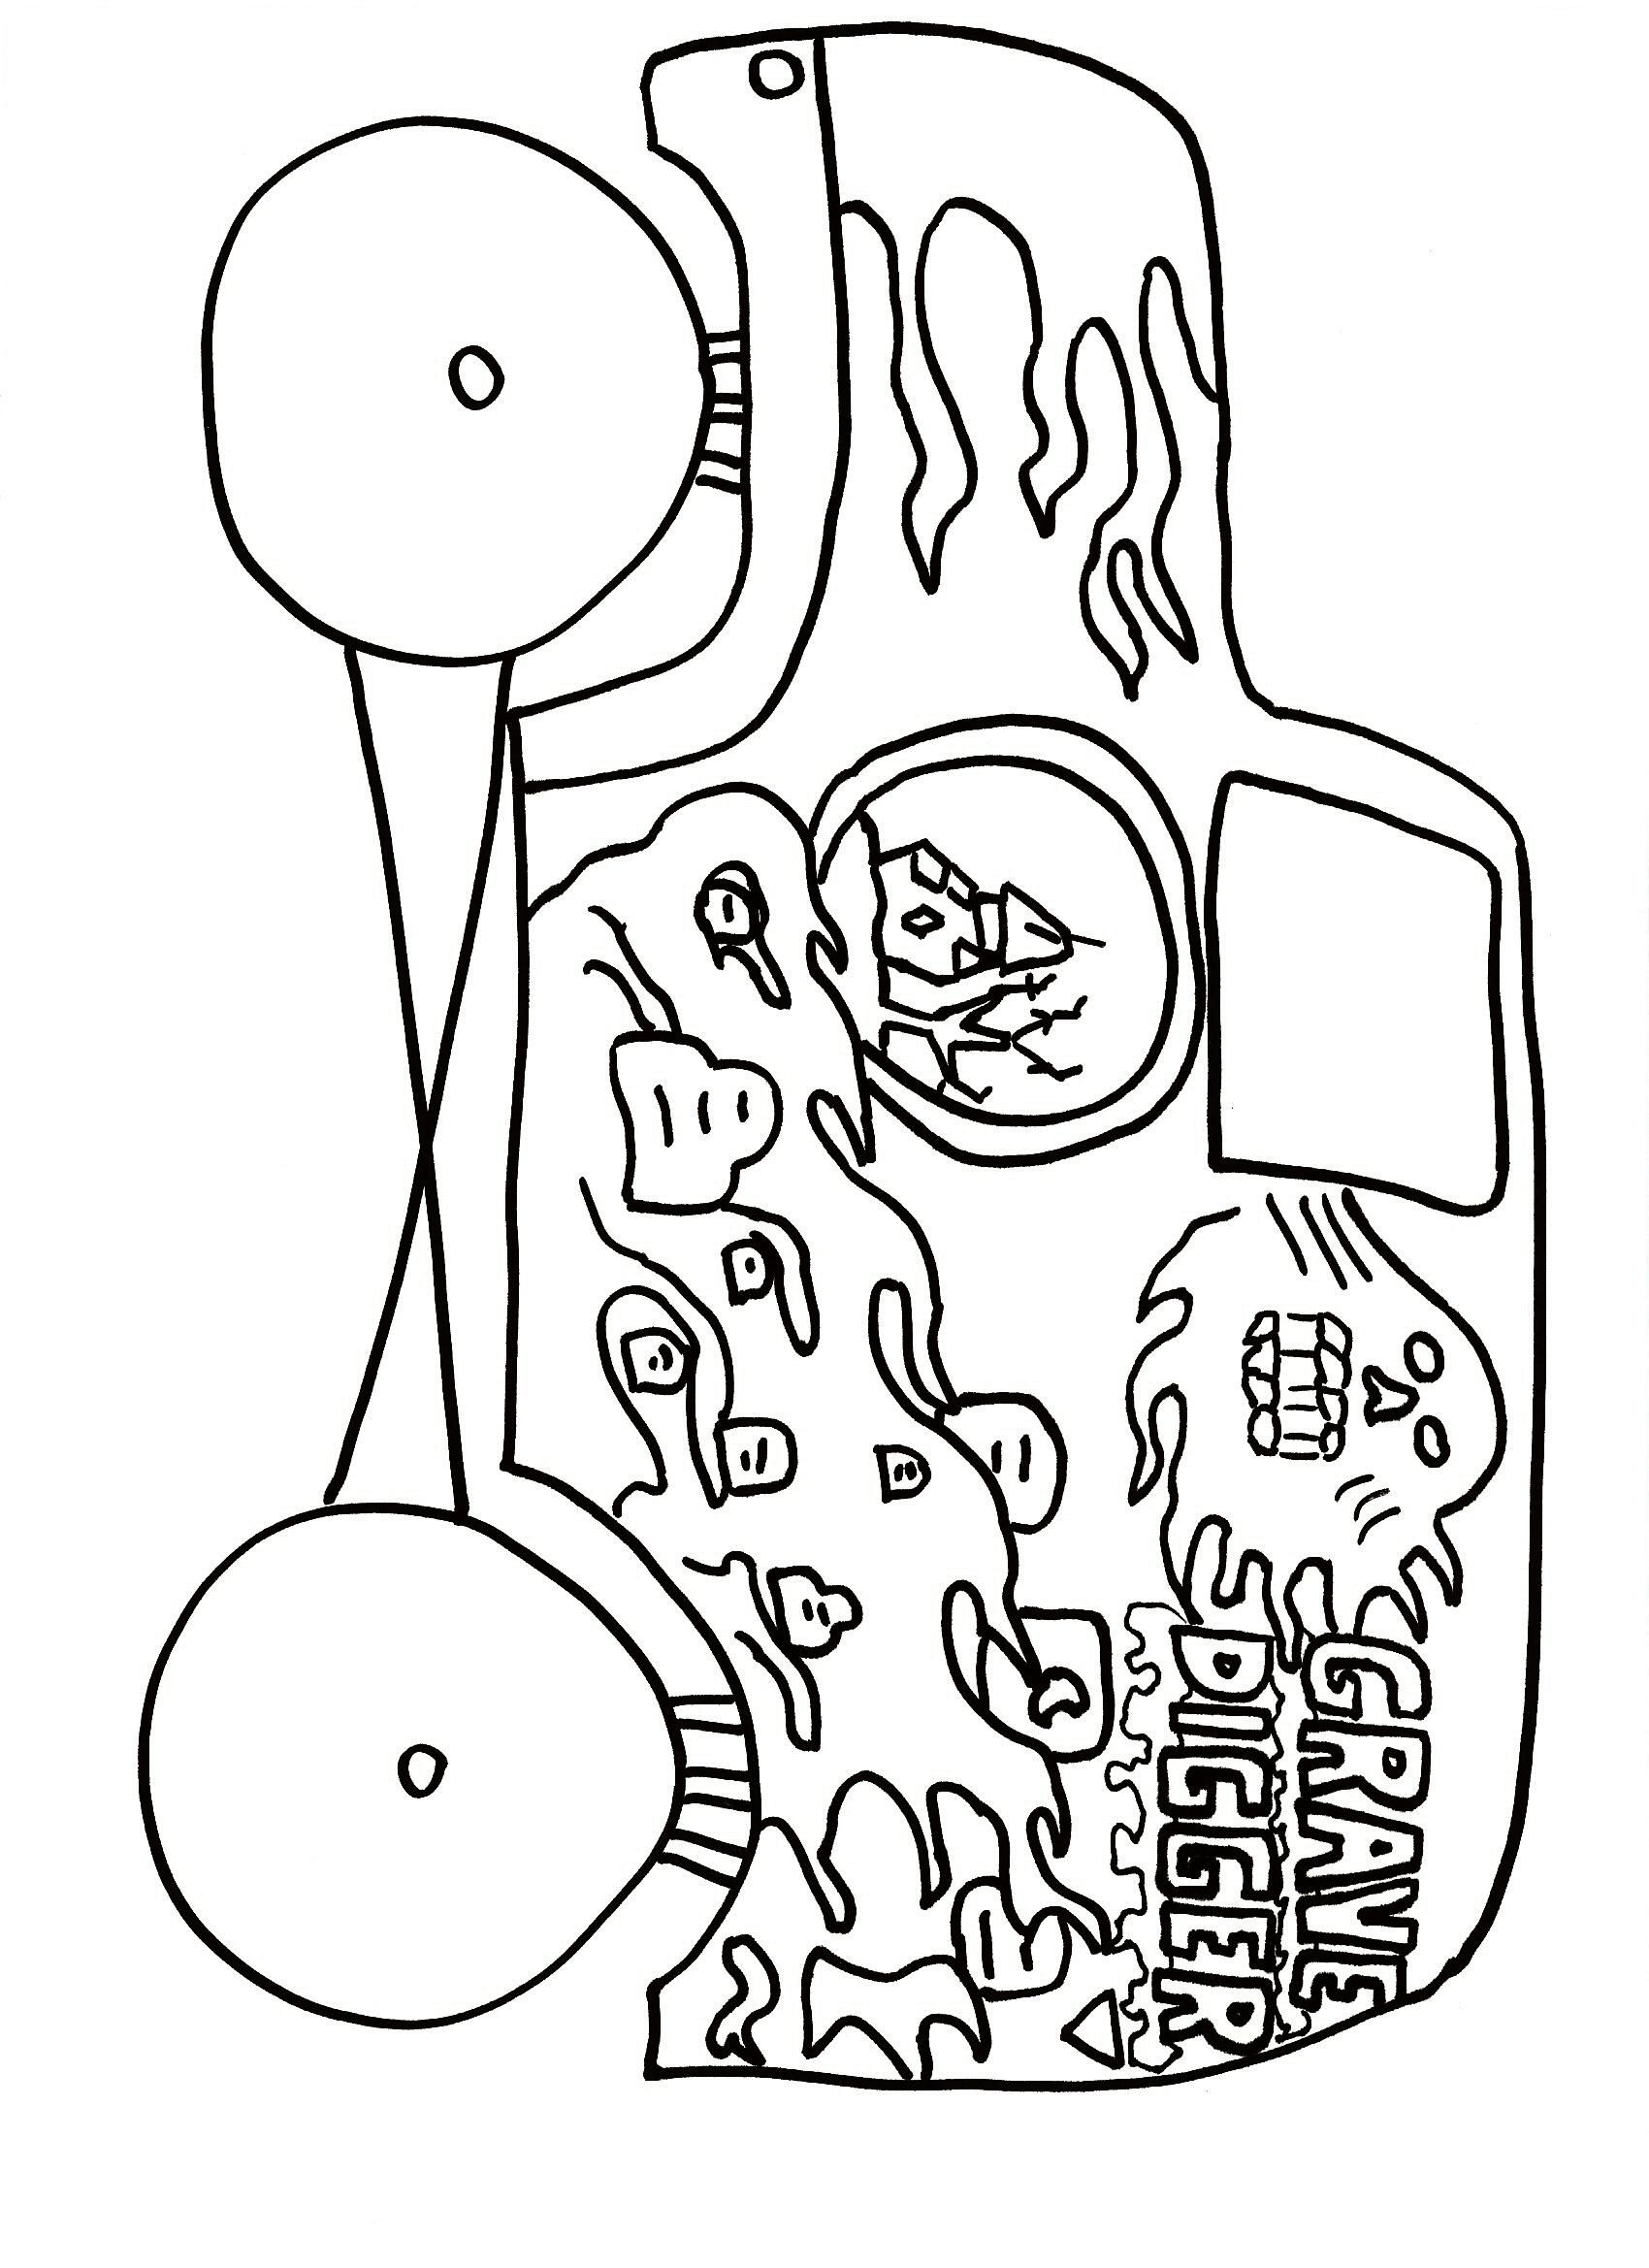 17 best images about coloring pages on kids 45 monster truck coloring pages transportation printable grave digger - Grave Digger Truck Coloring Pages